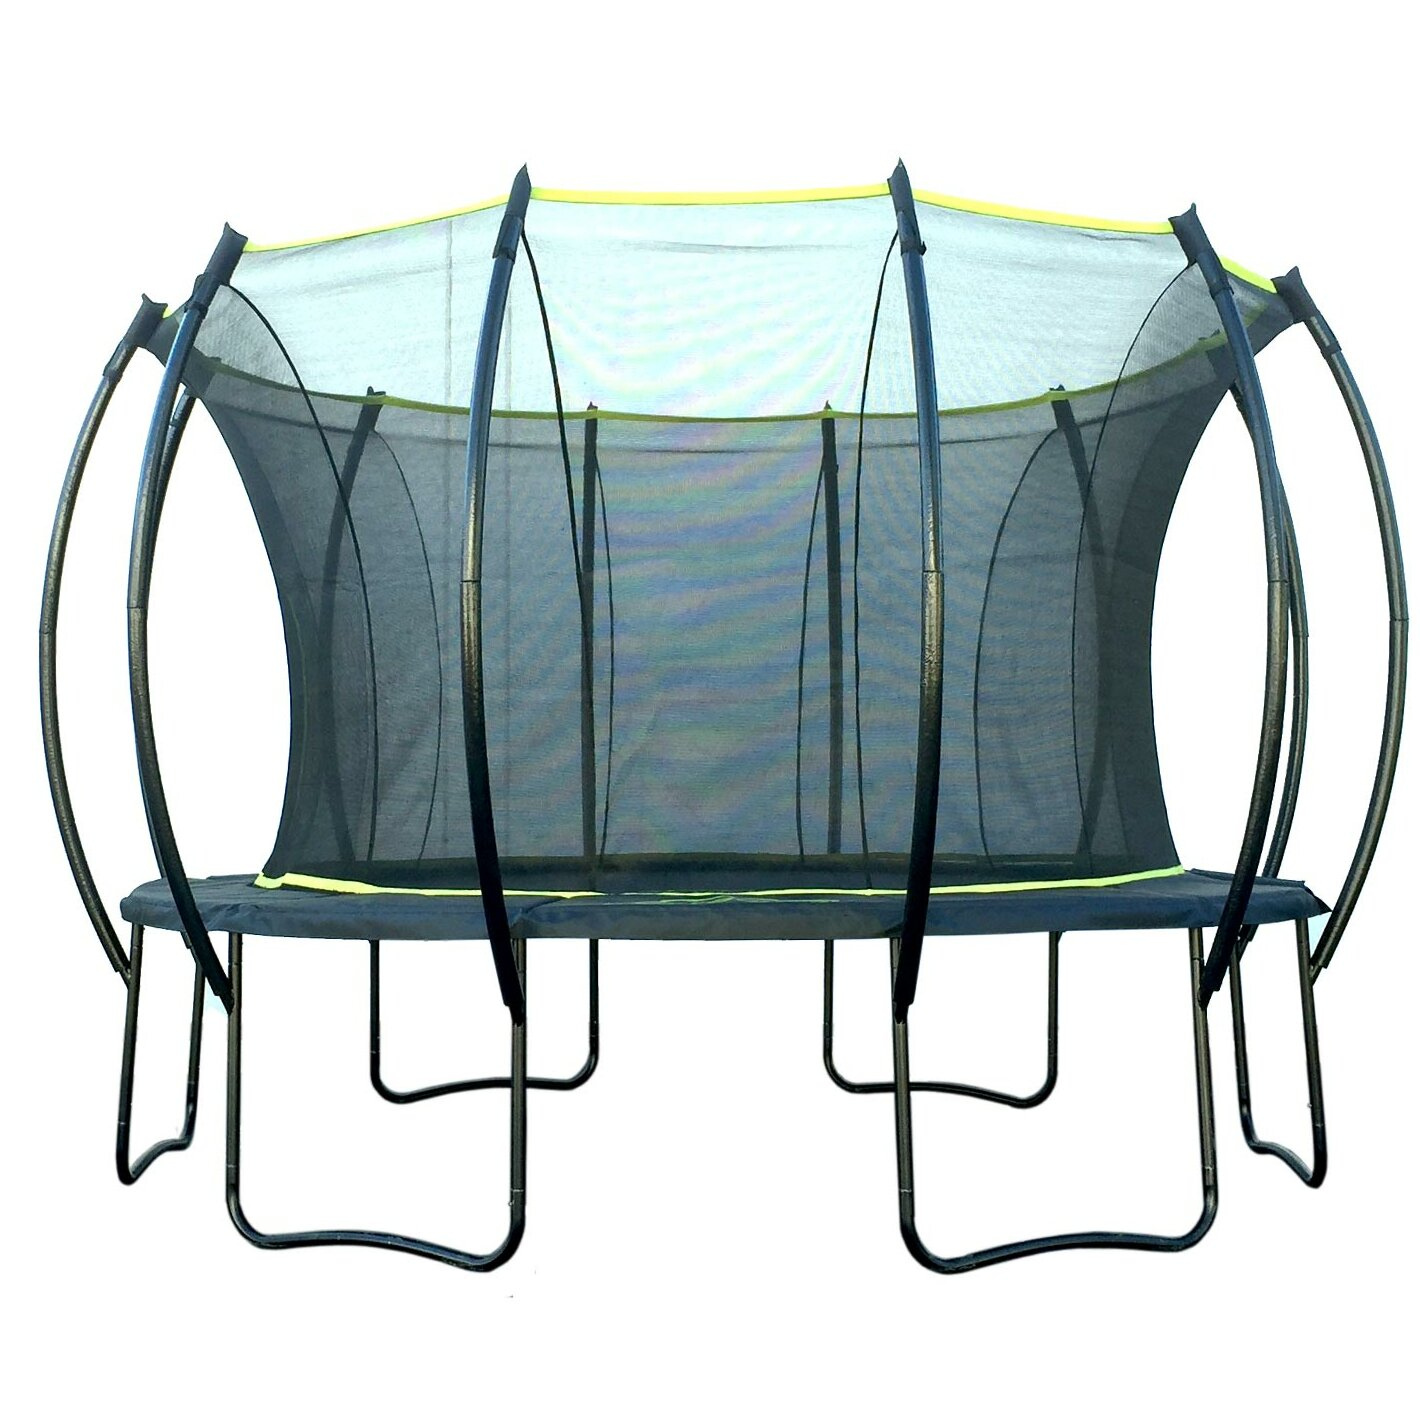 Propel 14 Trampoline With Fun Ring Enclosure: SKYBOUND Stratos 14' Trampoline With Safety Enclosure